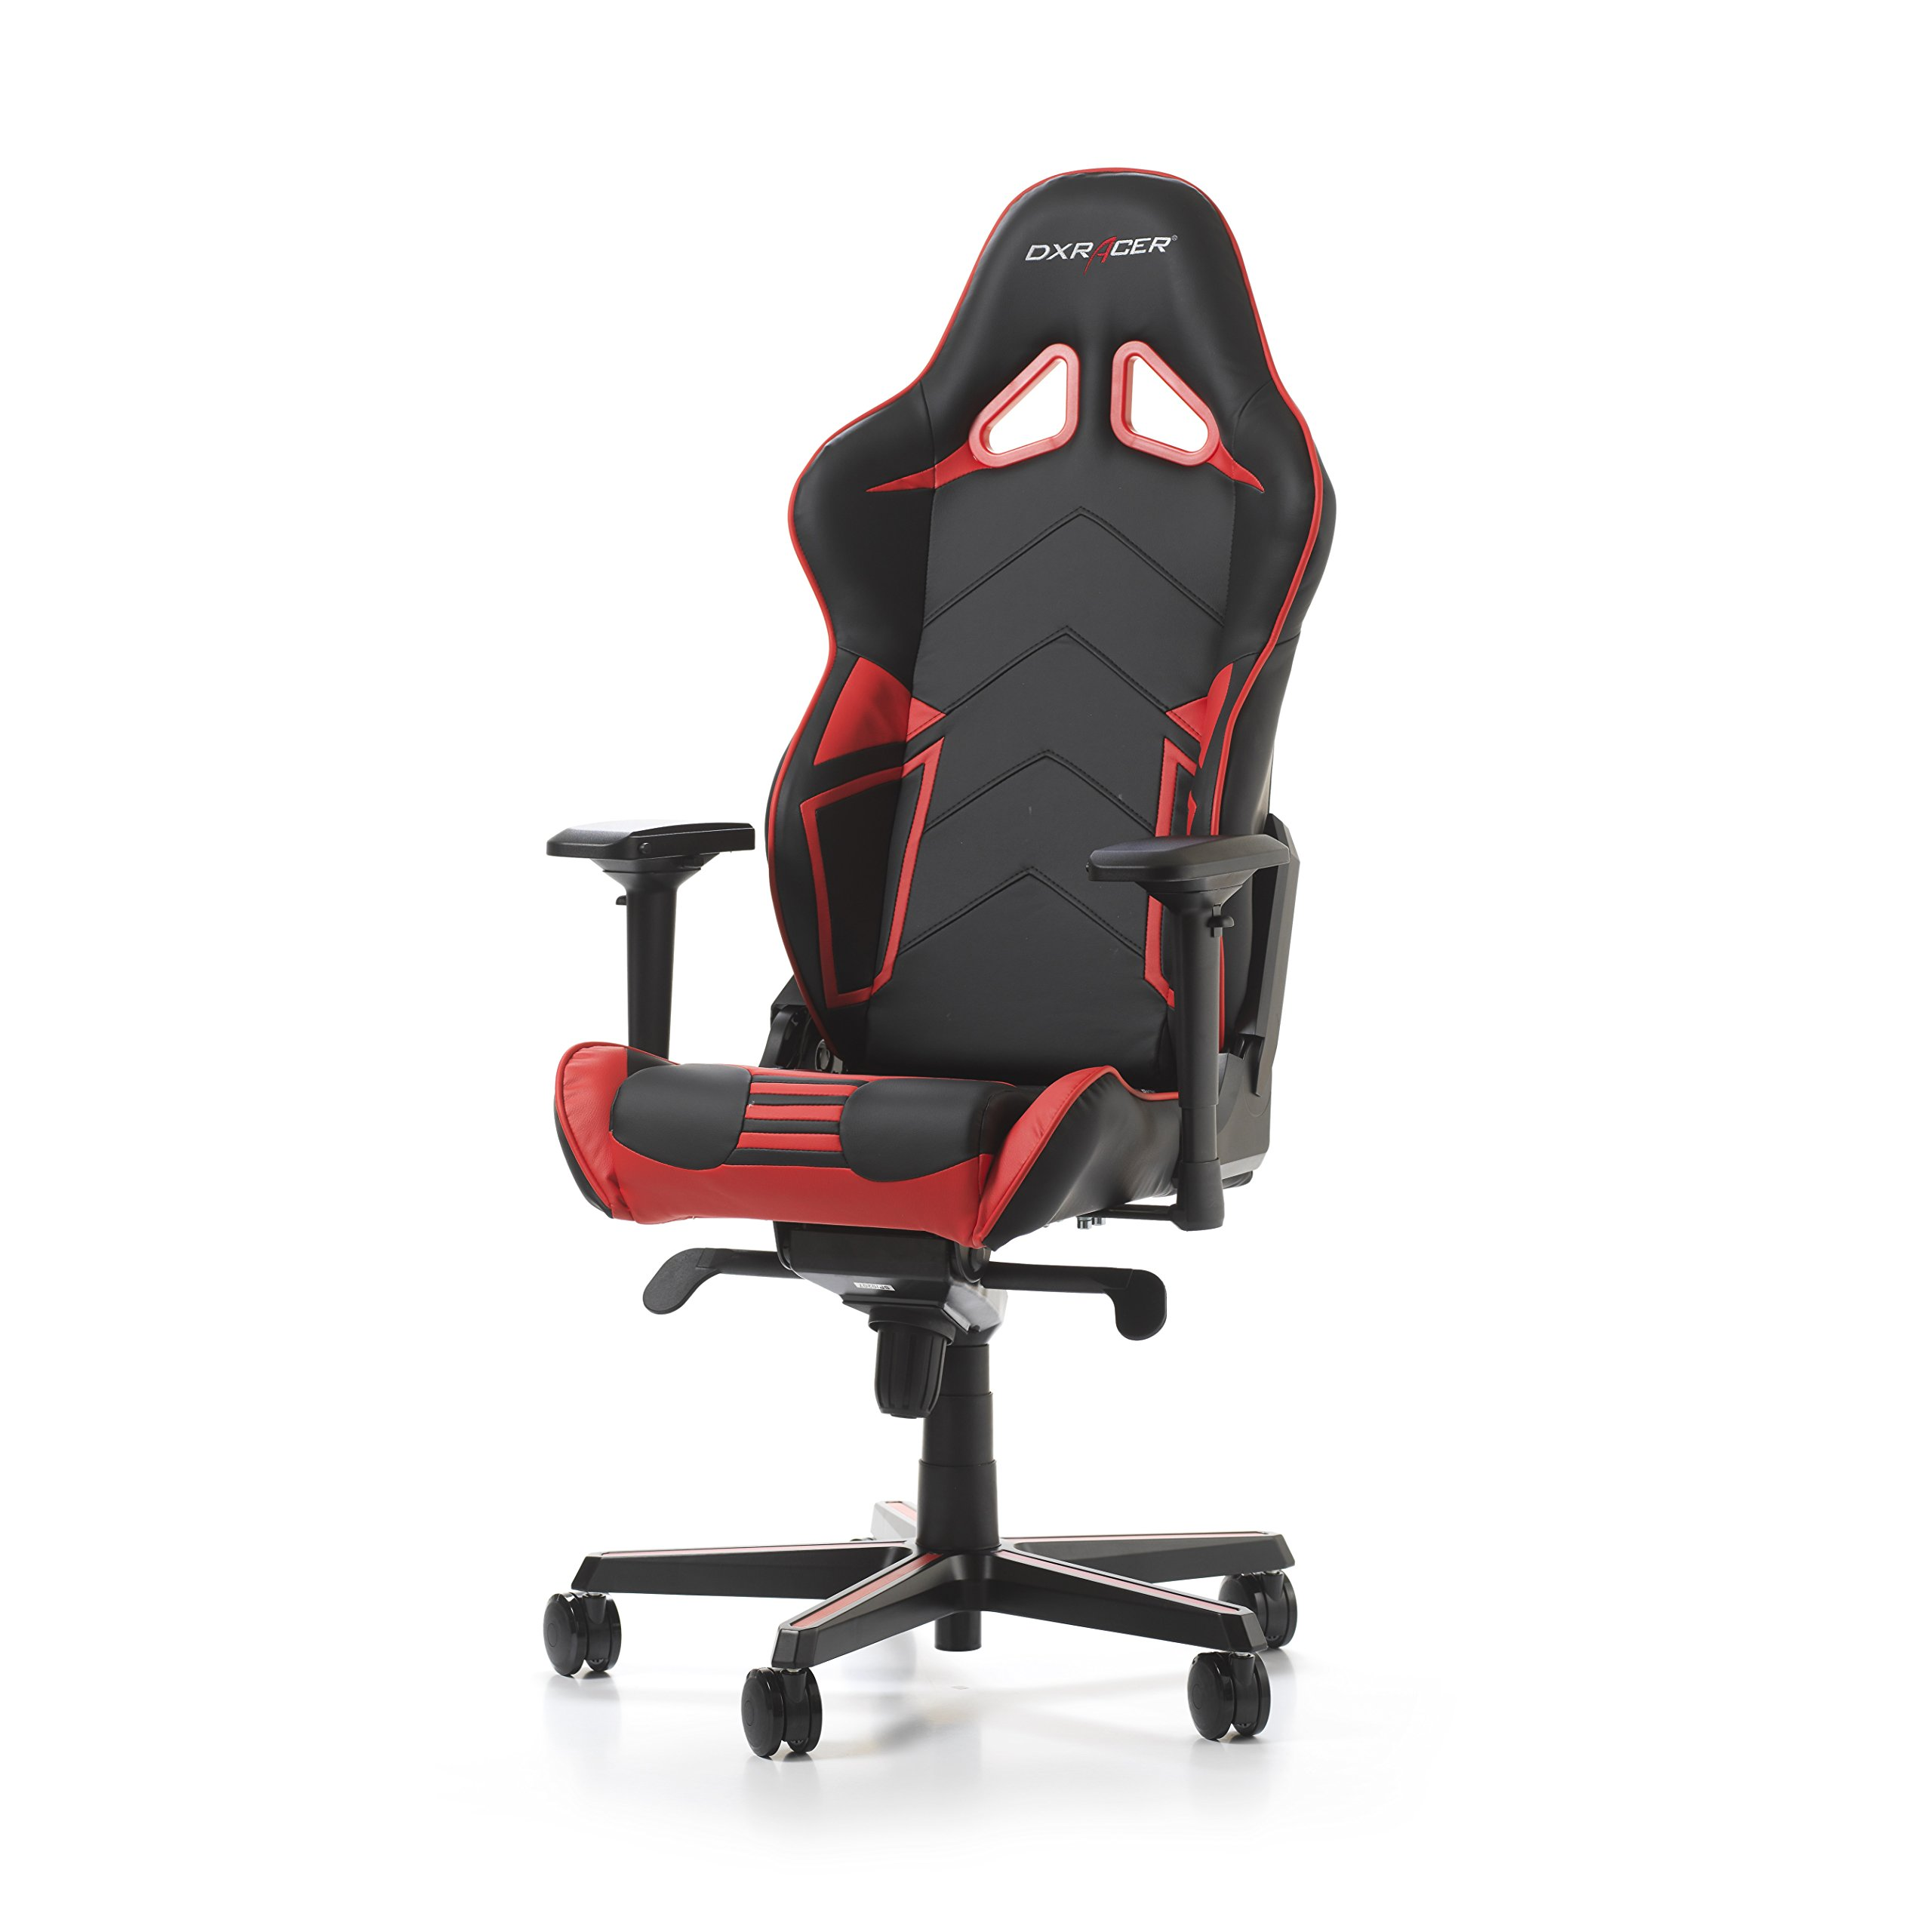 DXRacer Racing Series OH/RV131/NR Racing Seat Office Chair Gaming Ergonomic adjustable Computer Chair with - Included Head and Lumbar Support Pillows (Black / Red)